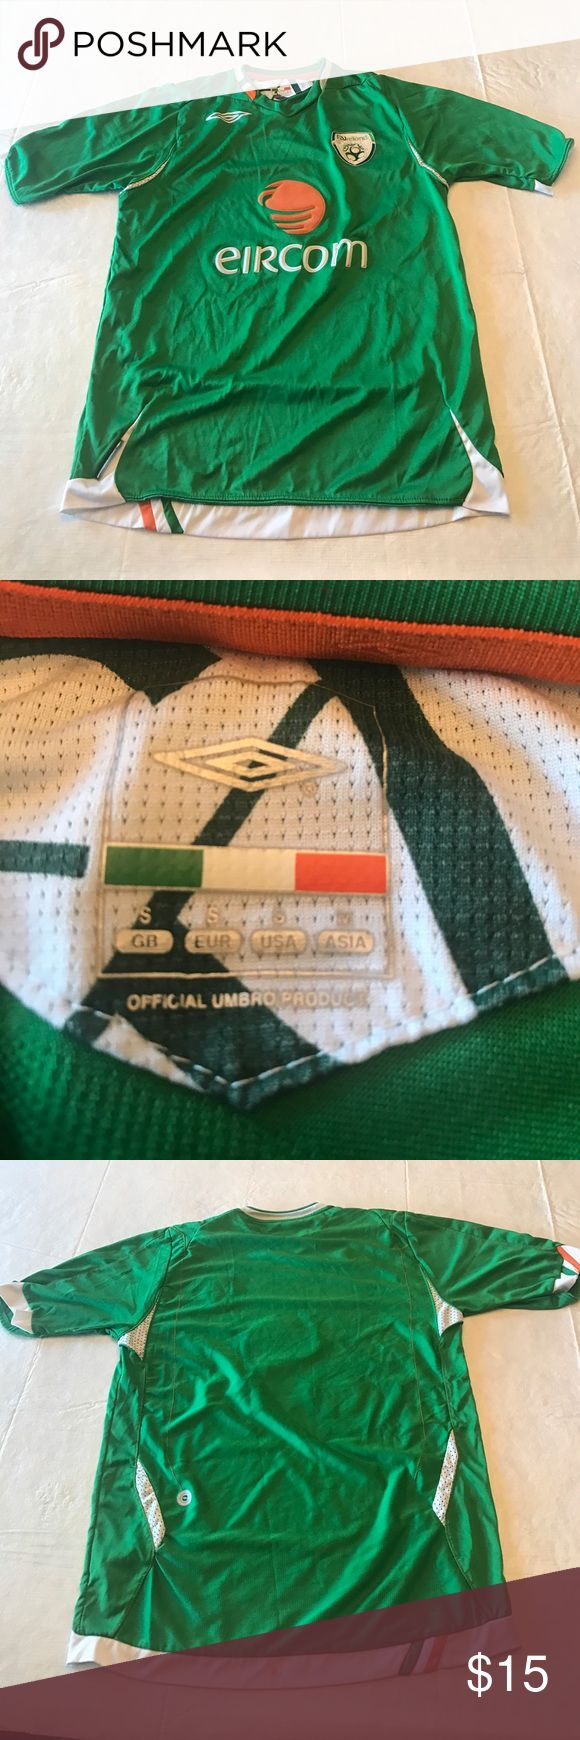 Ireland jersey Ireland jersey size youth small. Small orange spot on bottom back as pictured    Box 7 Umbro Shirts & Tops Tees - Short Sleeve